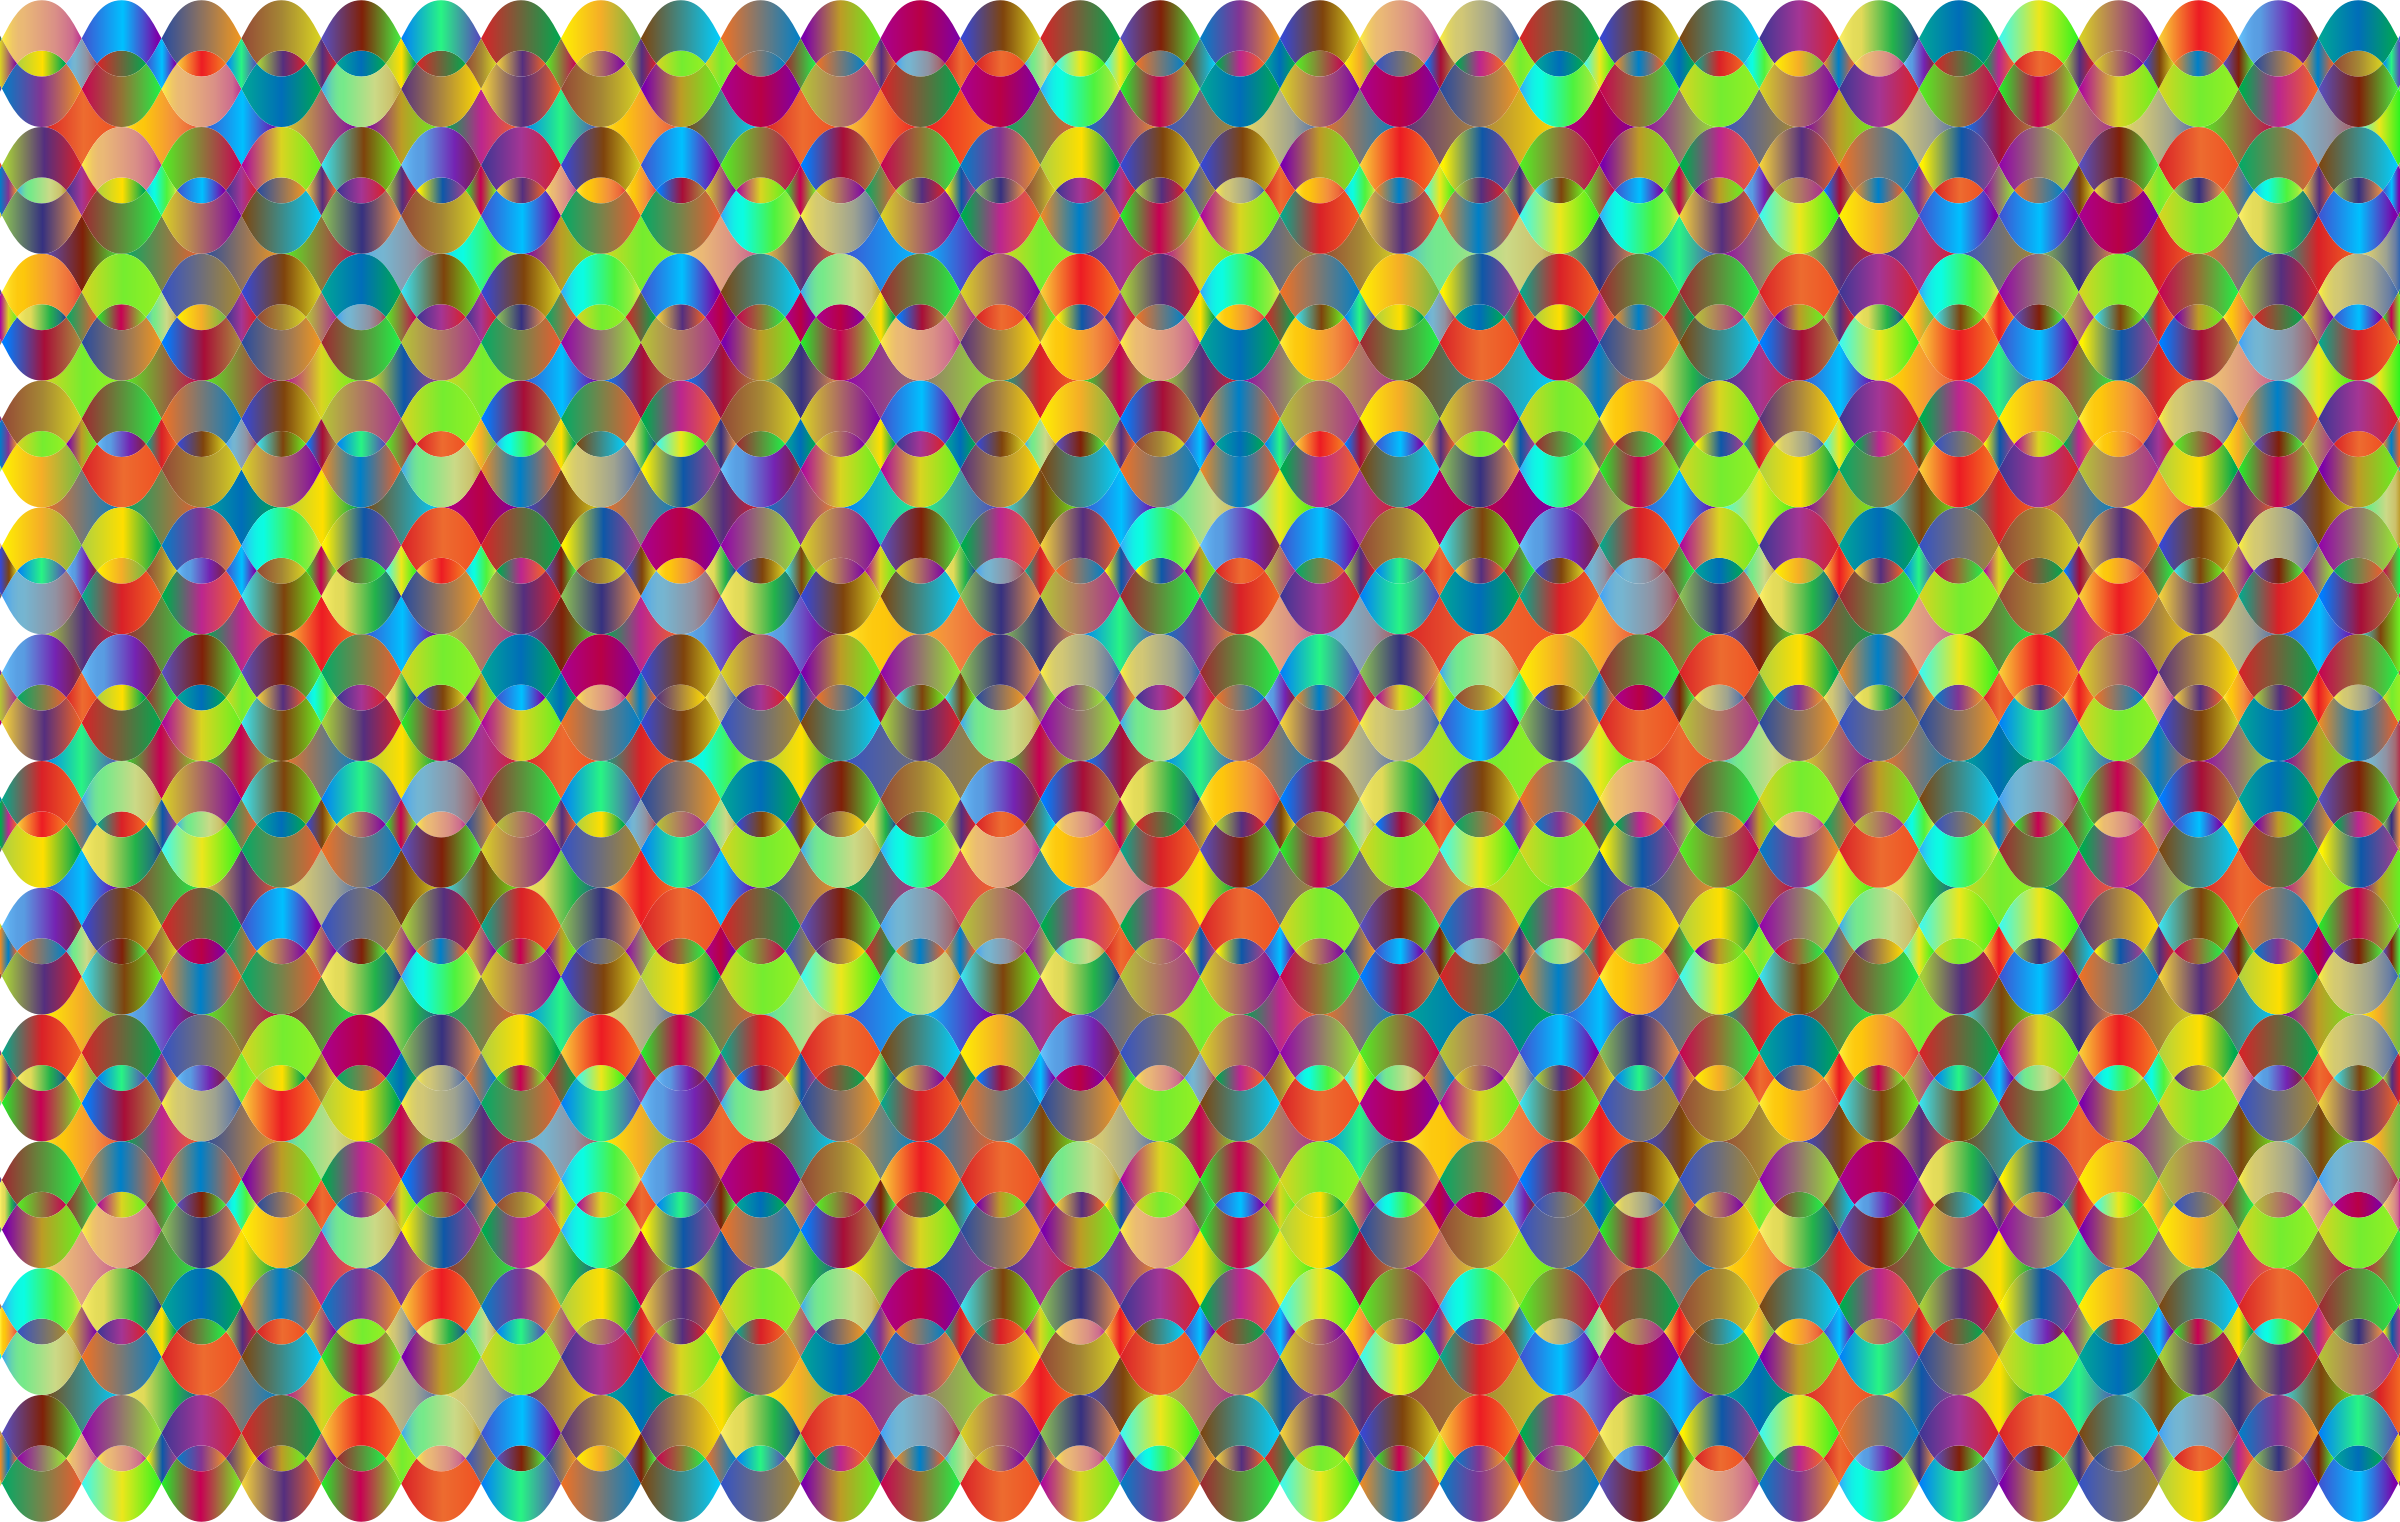 Prismatic Abstract Background Design 3 by GDJ